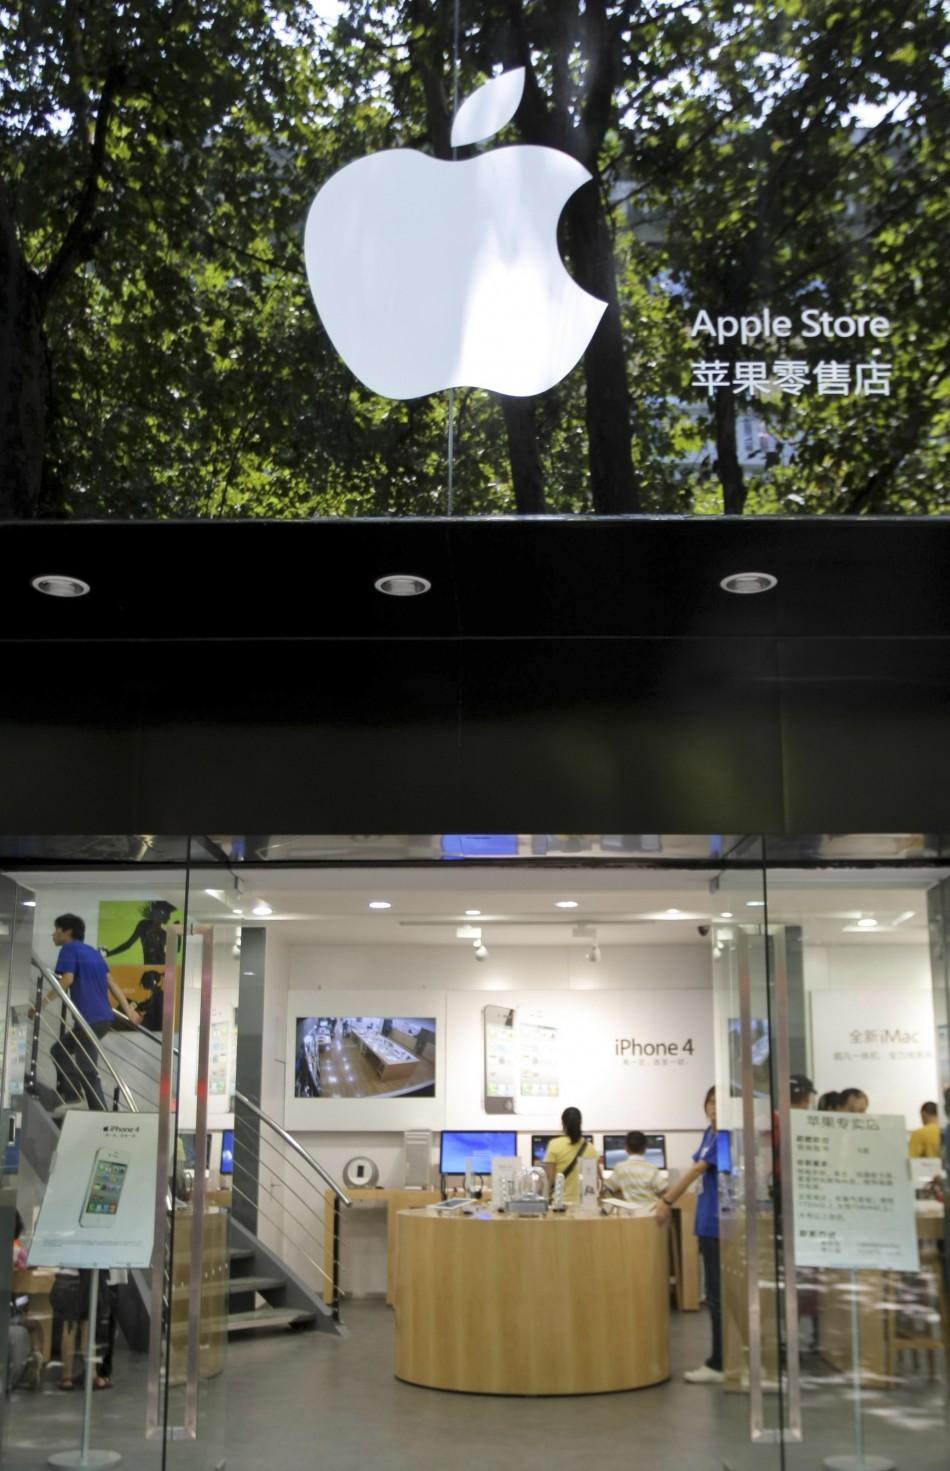 Customers and employees are seen in a fake Apple store in Kunming, Yunnan province July 21, 2011.